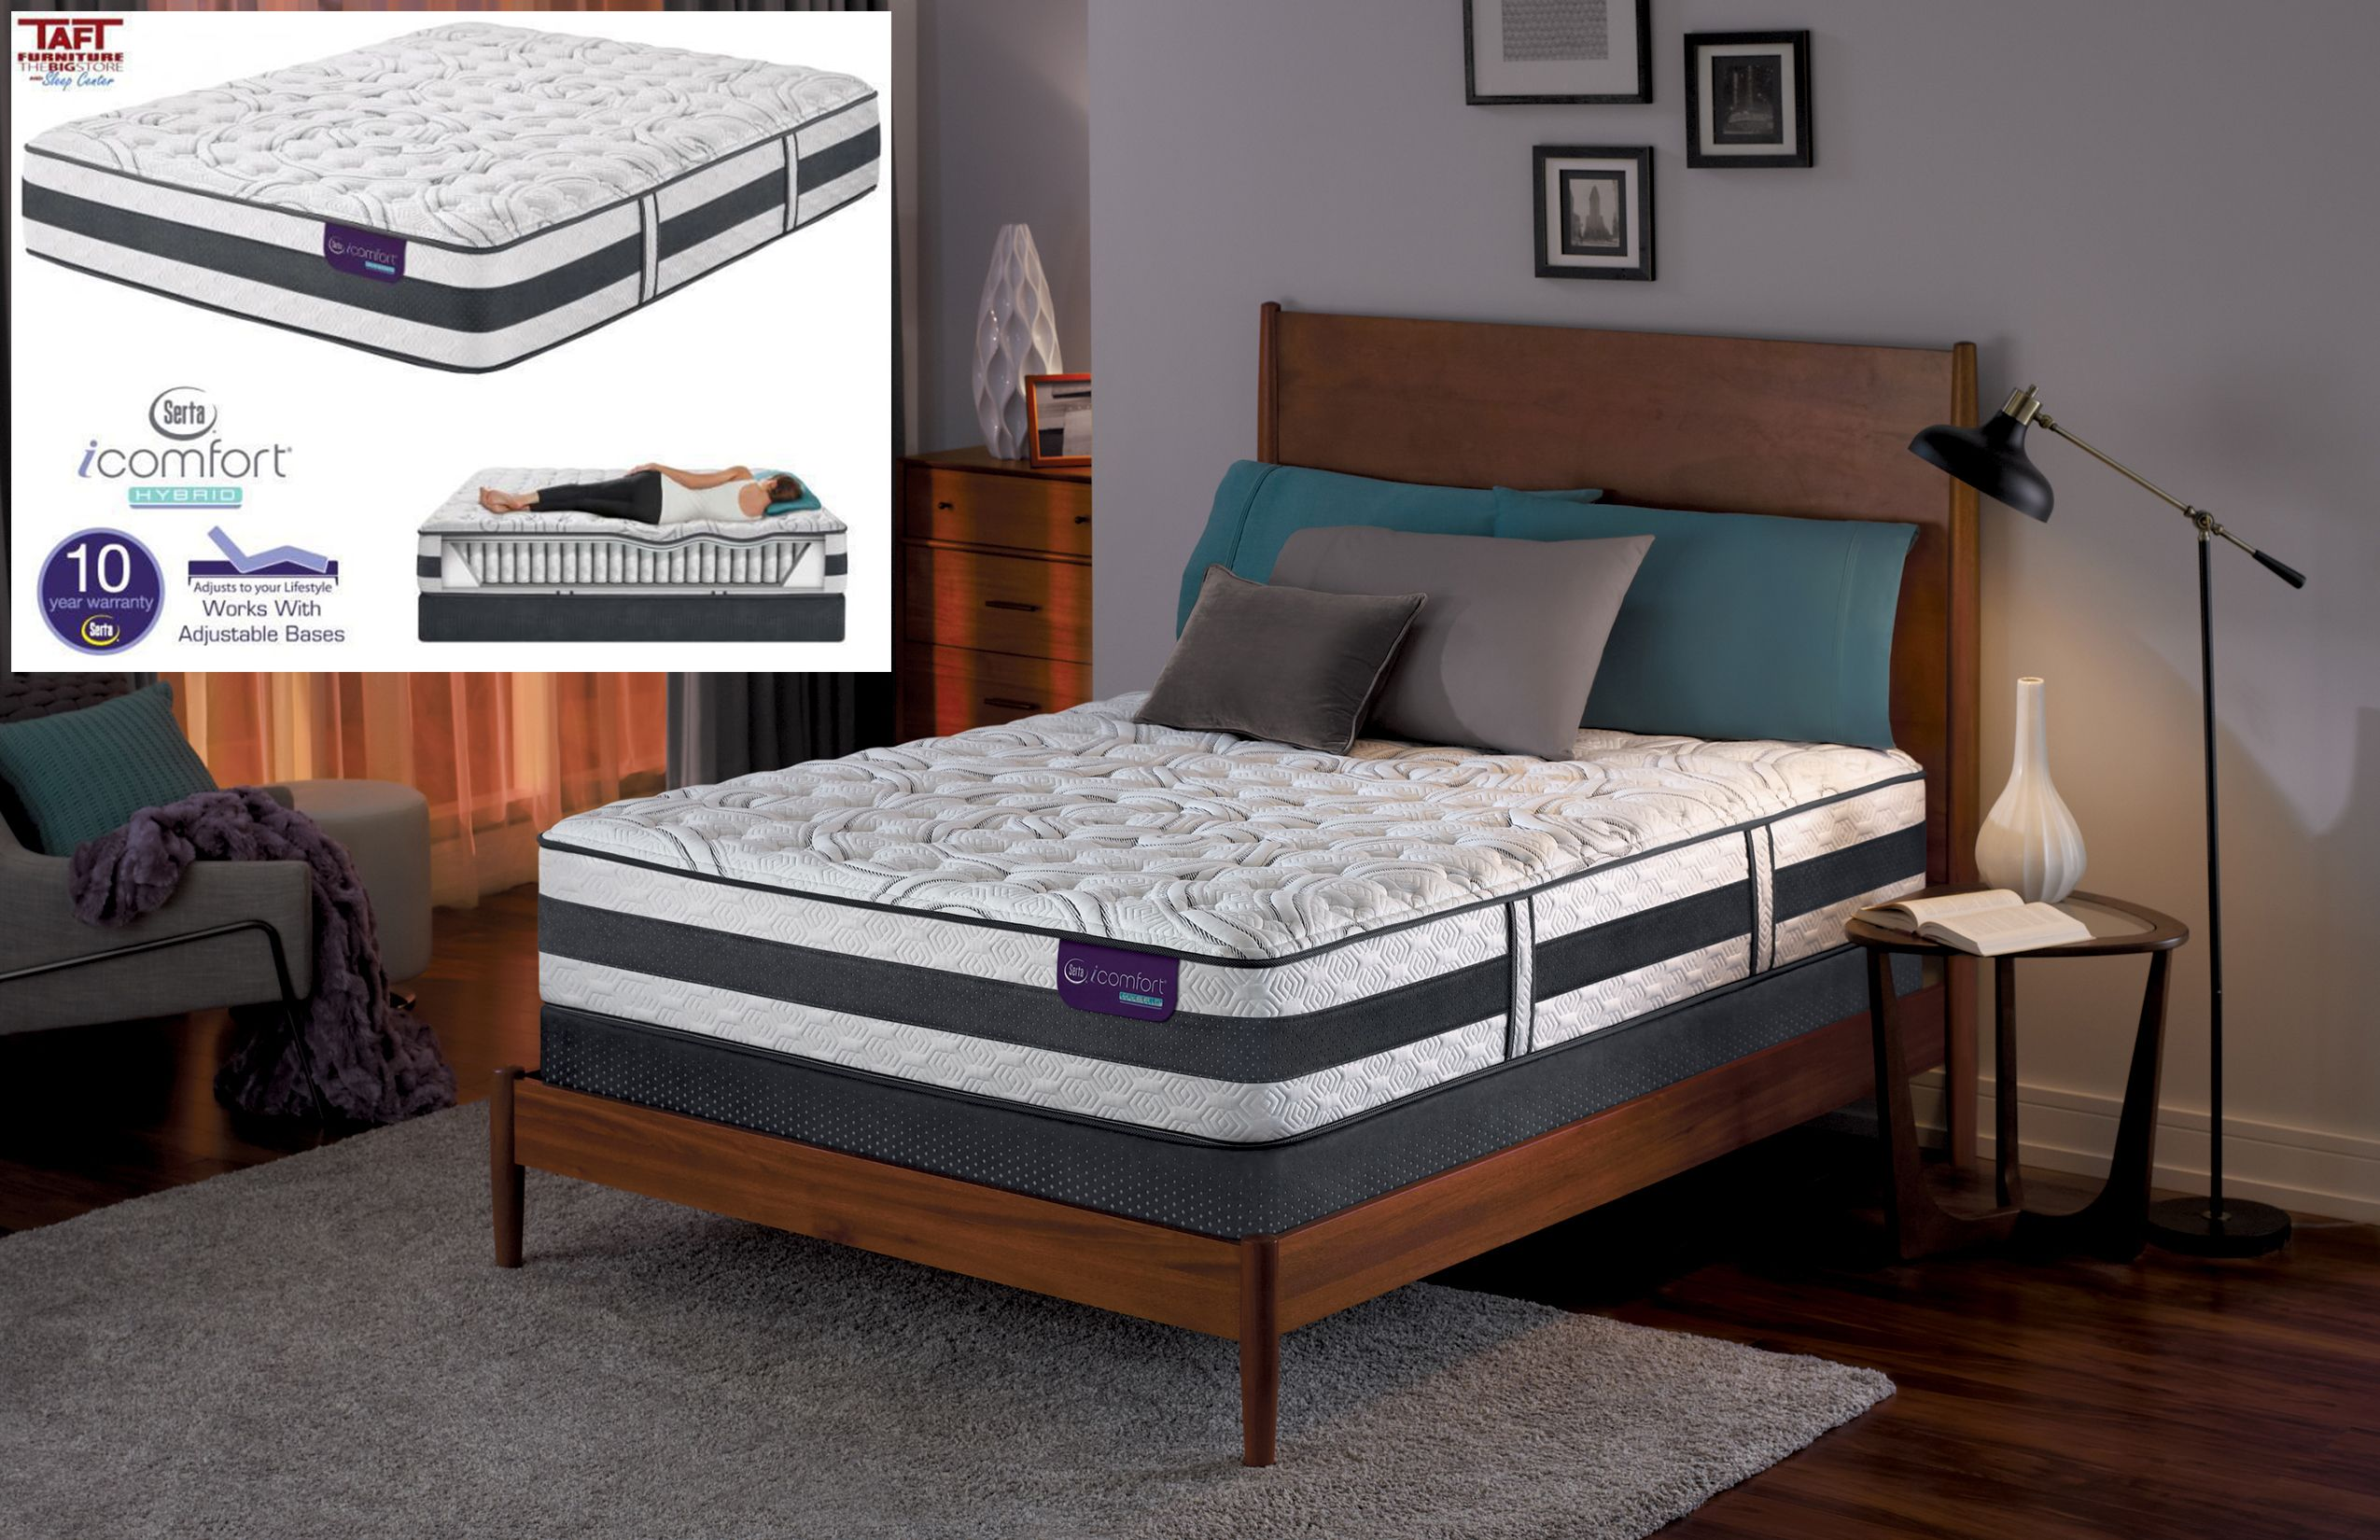 Sleep Soundly Through The Night On The Comfortable Serta Icomfort